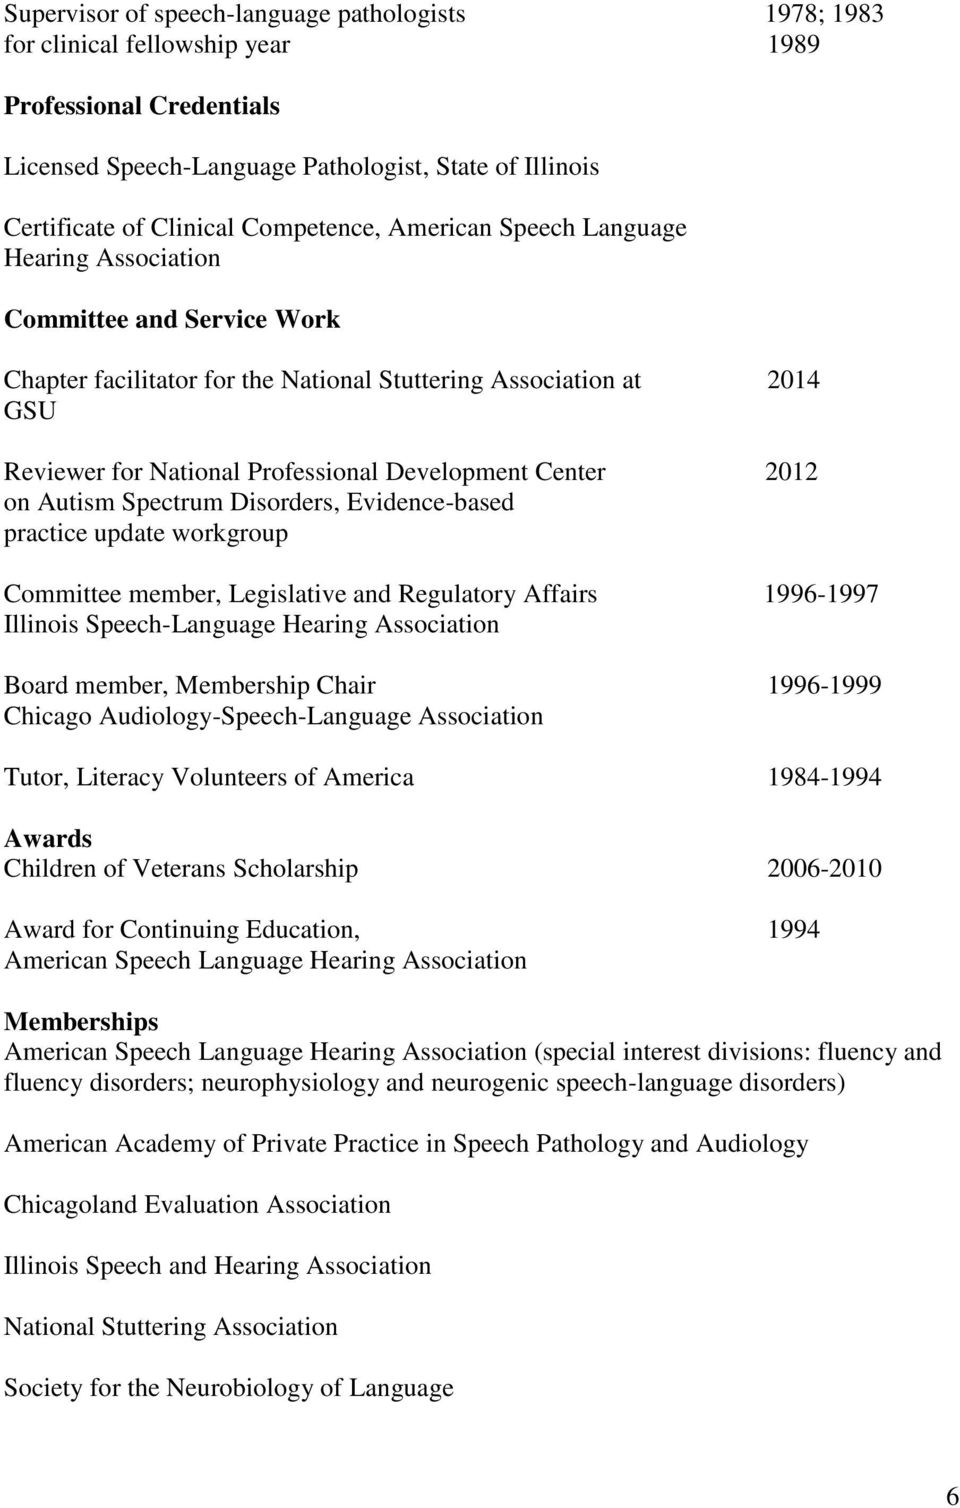 Development Center 2012 on Autism Spectrum Disorders, Evidence-based practice update workgroup Committee member, Legislative and Regulatory Affairs 1996-1997 Illinois Speech-Language Hearing